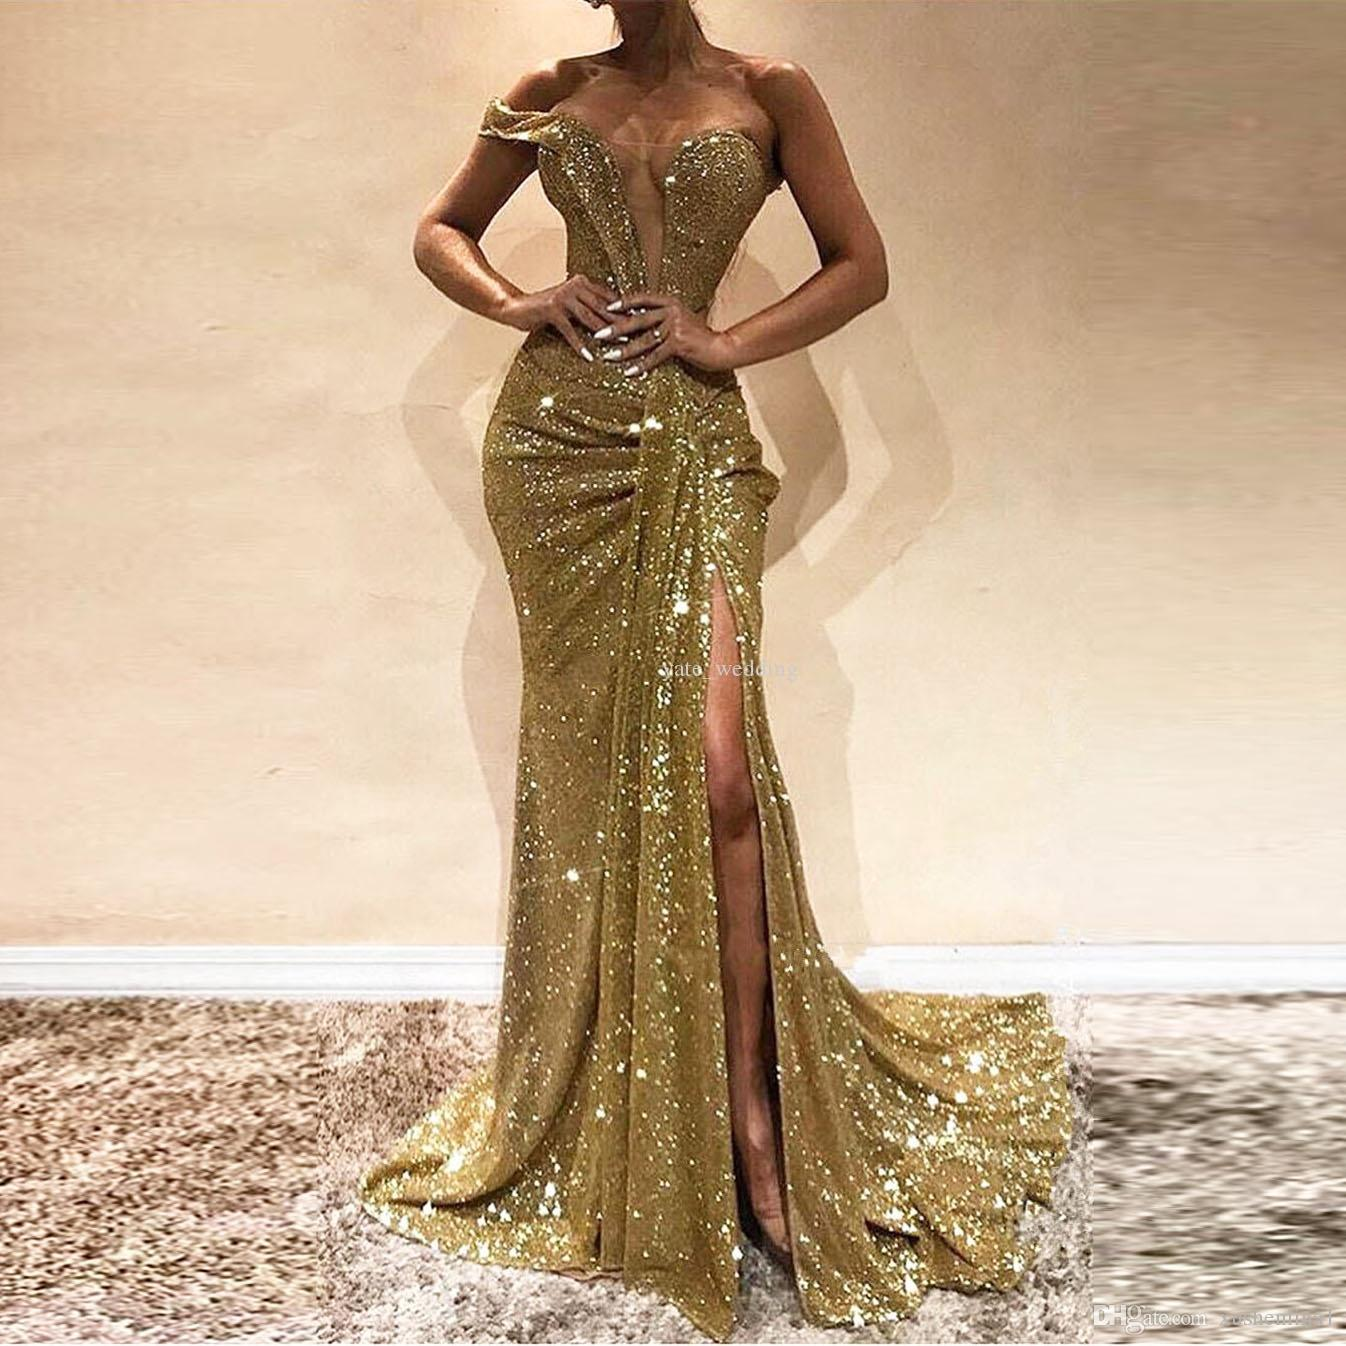 Stunning Gold Mermaid Prom Dress Leg Split Women Evening Party Wear Maxi Gowns Custom Made Sequins Sexual Lady Graduation Prom Dress Gown Dave And